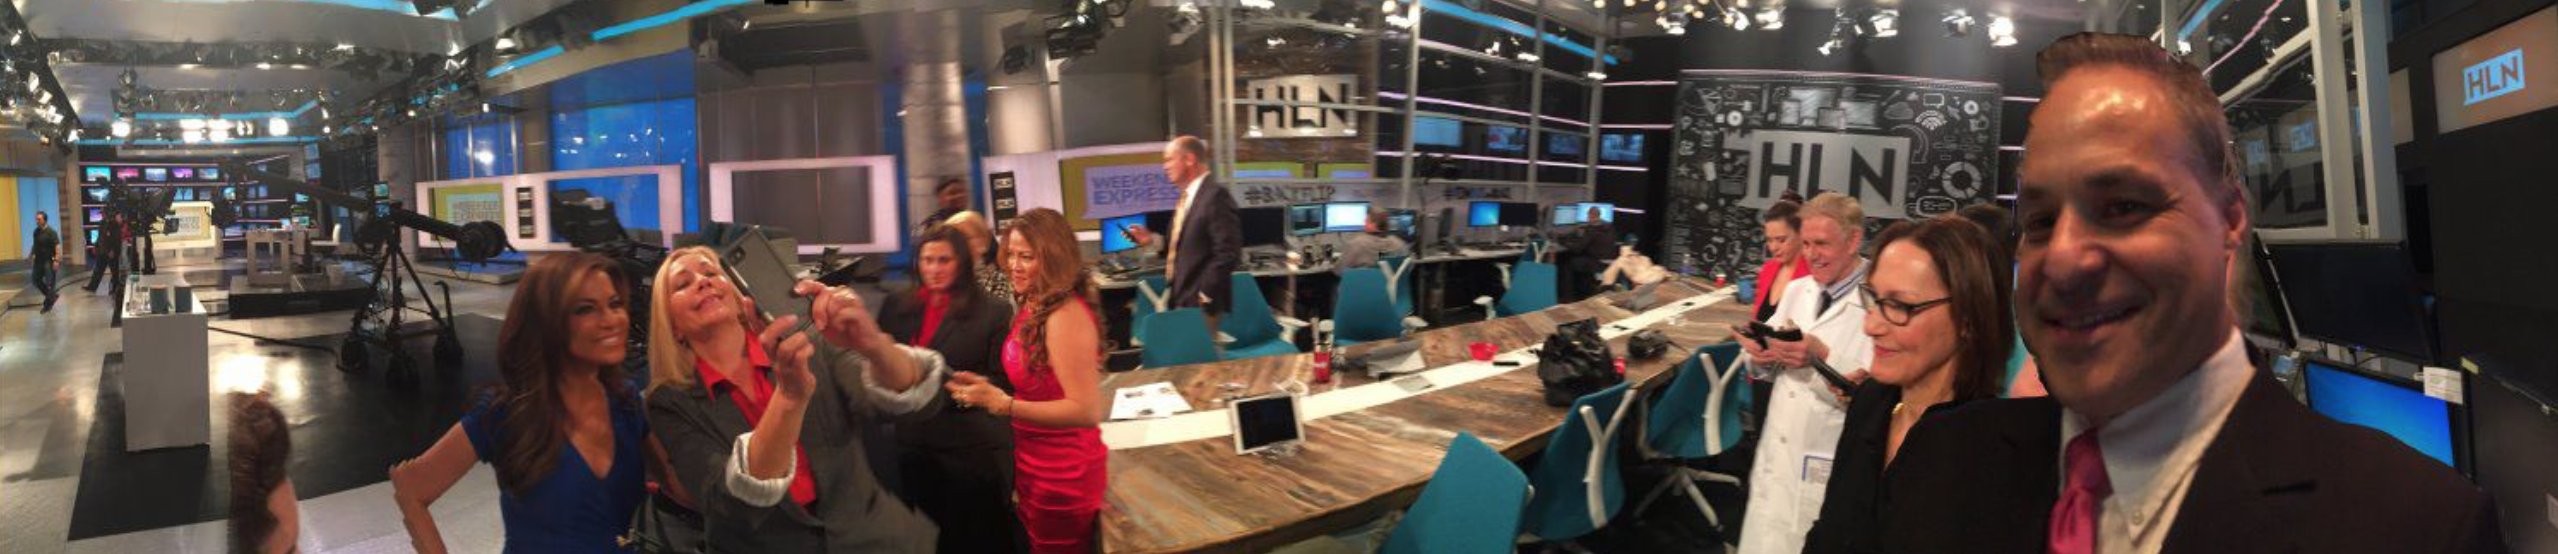 Celebrity Launchpad at CNN